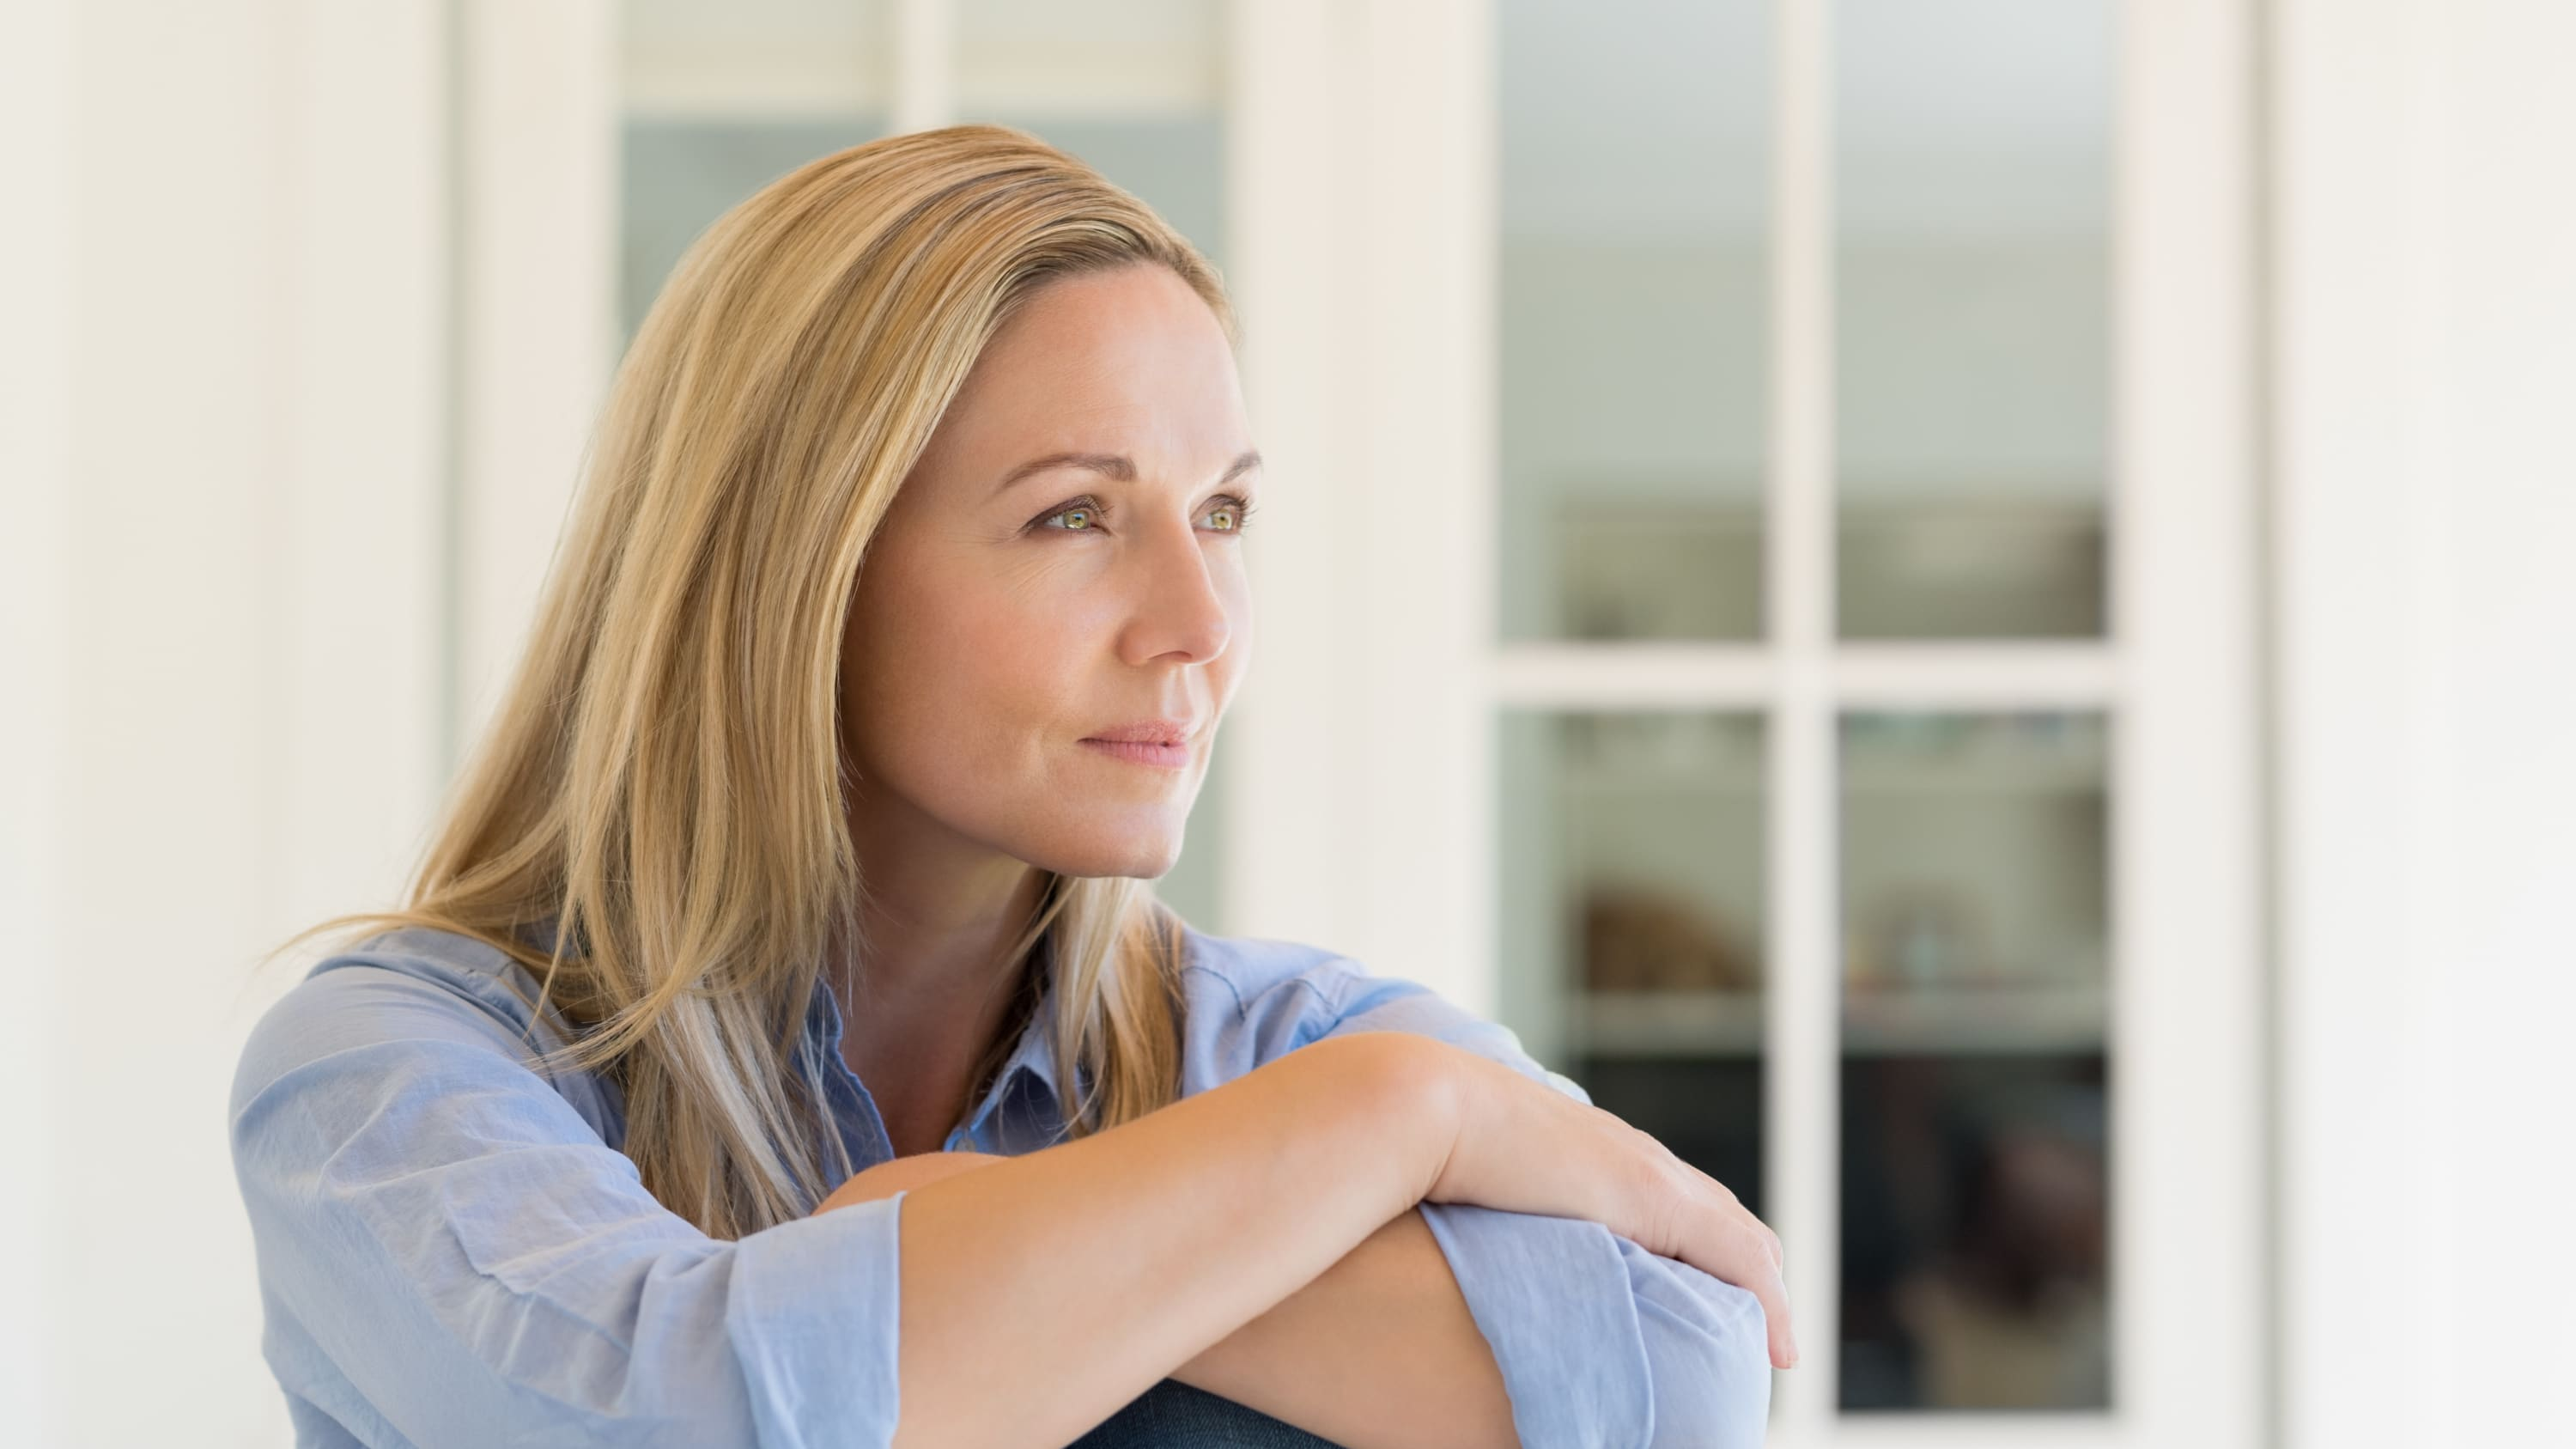 A woman is deep in thought, possibly thinking about neurogenic bladder